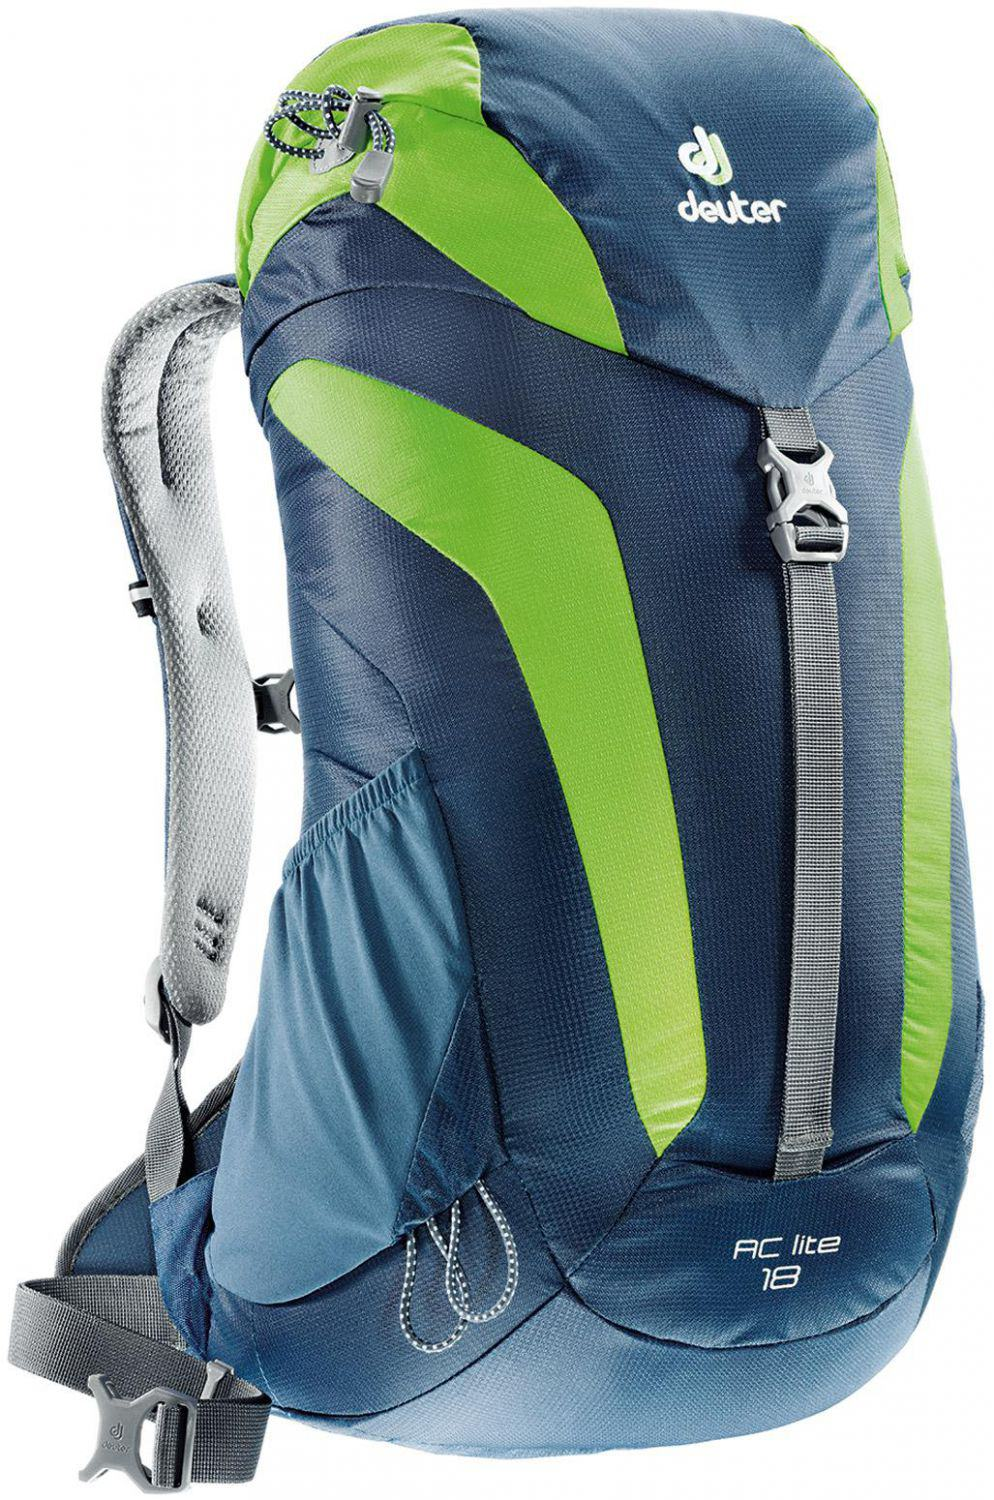 Фото рюкзак deuter ac lite 18 midnight/kiwi